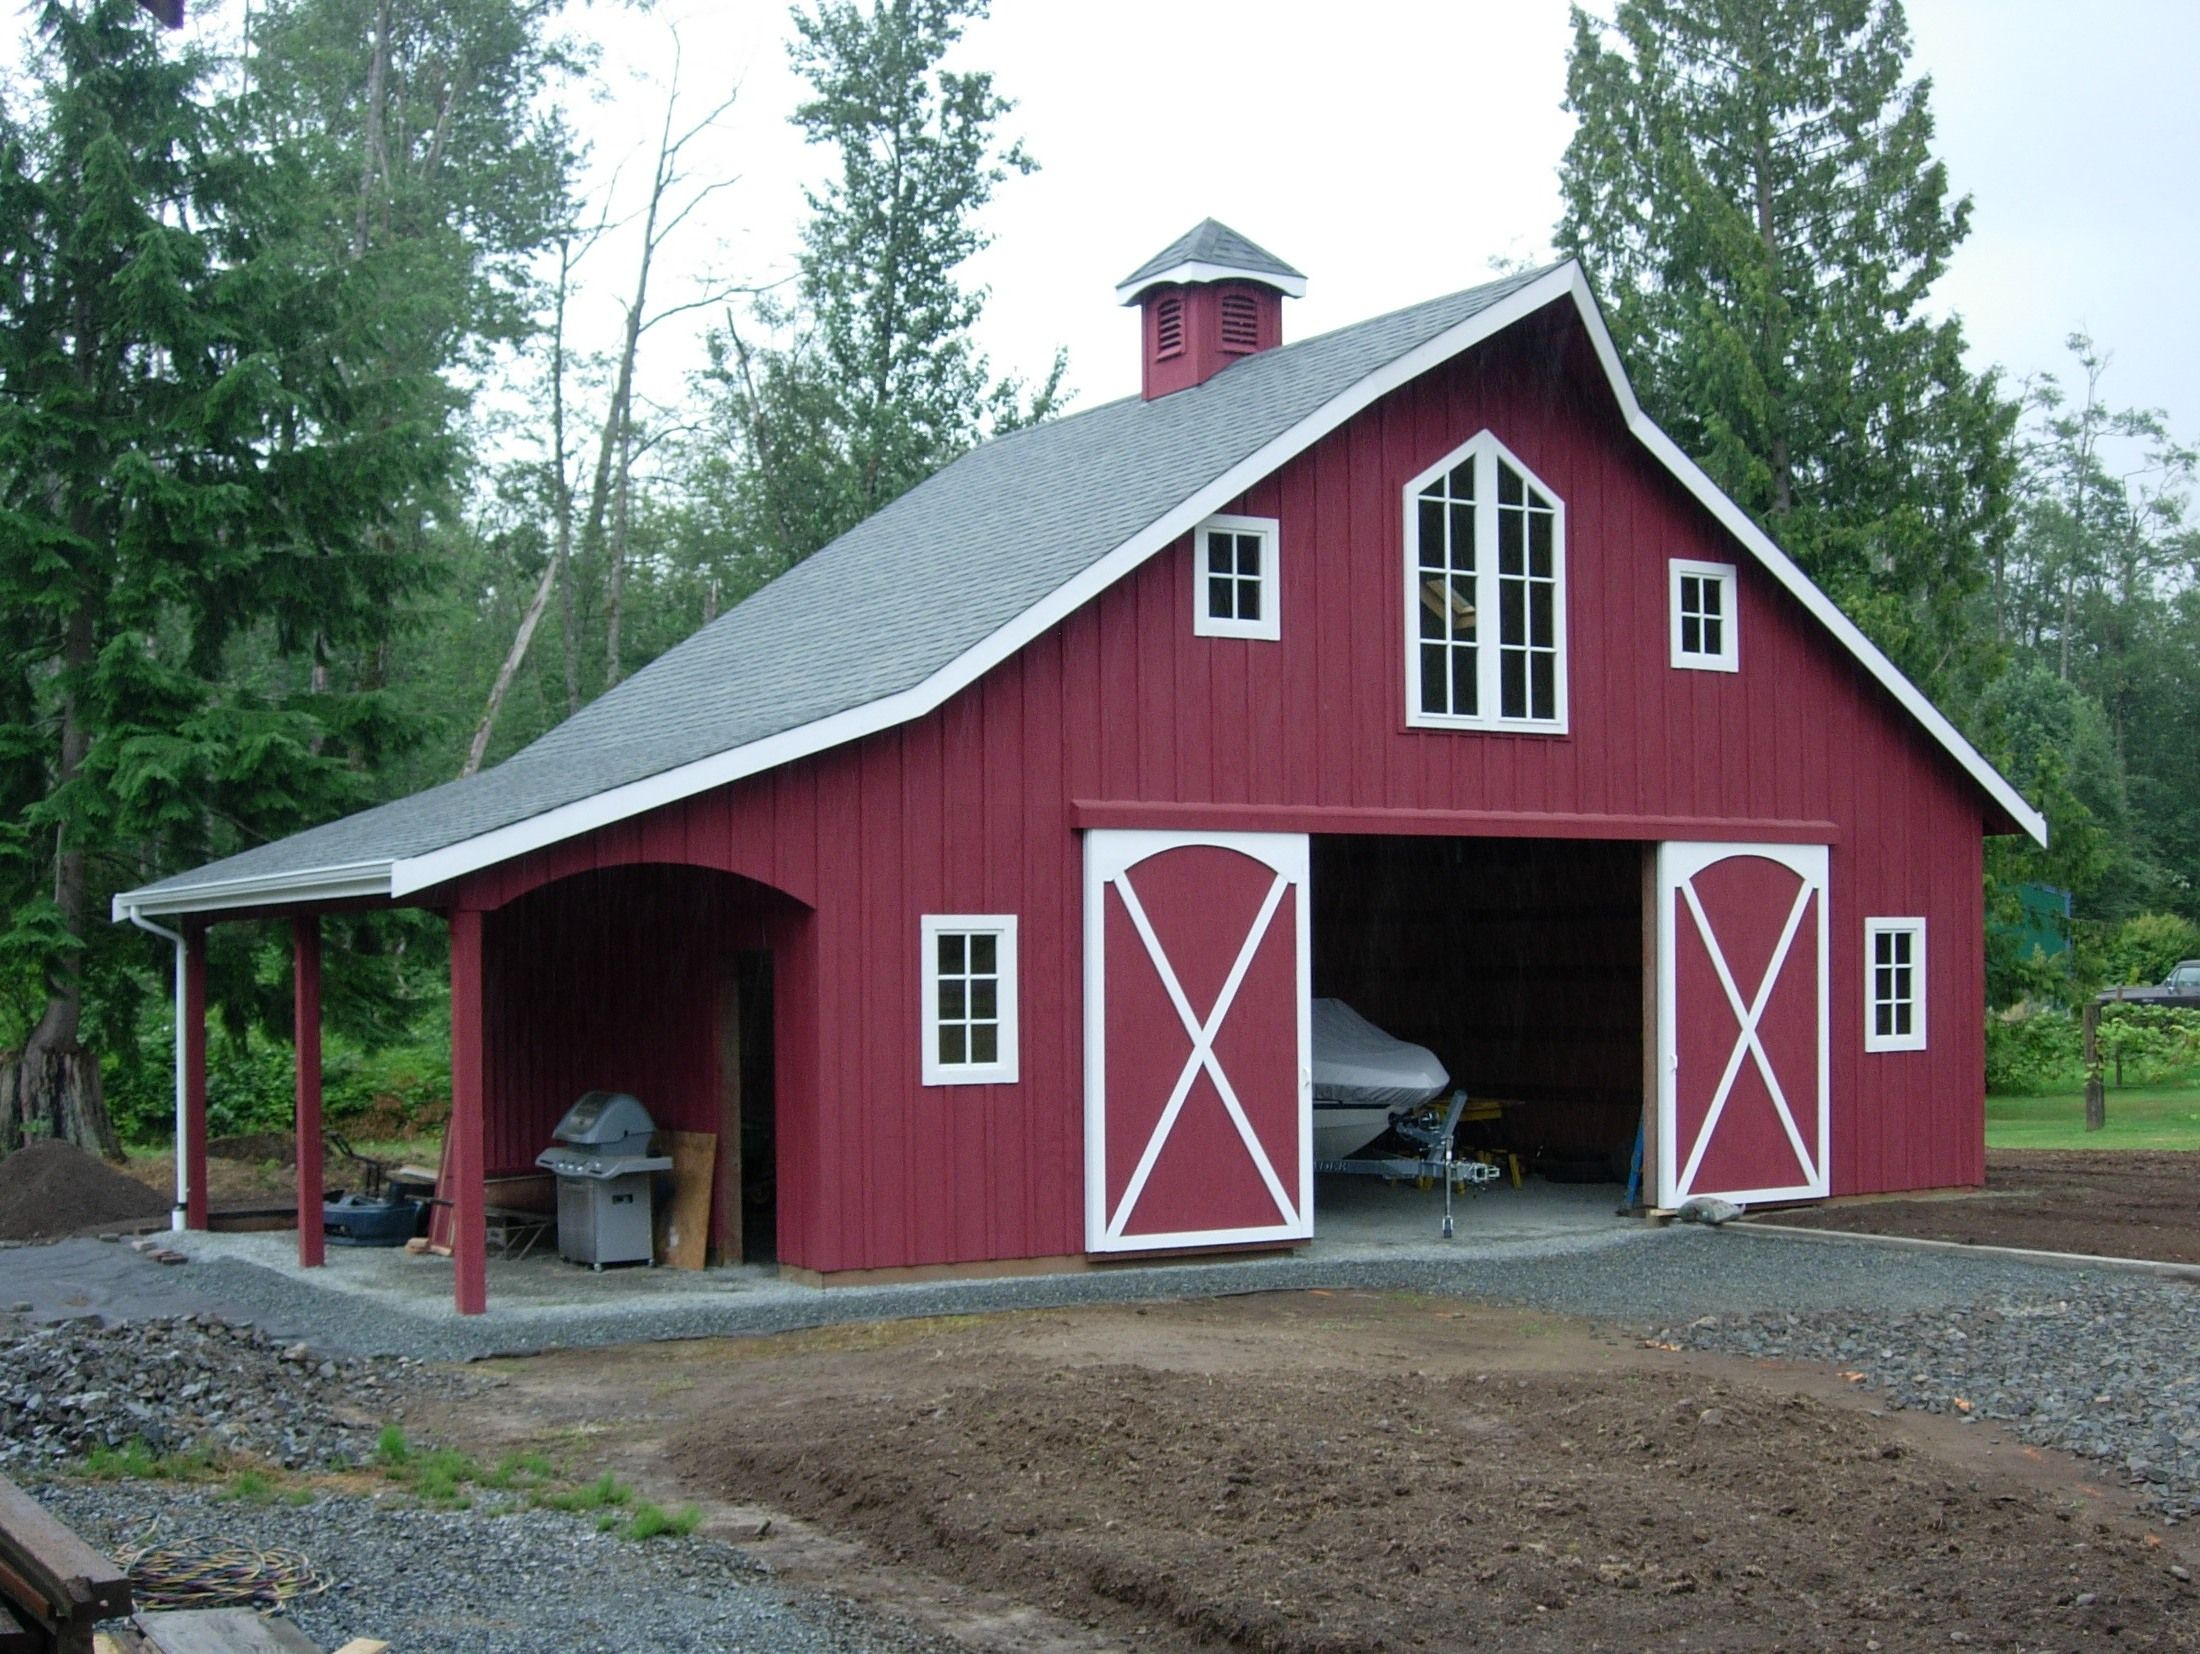 barn design more horses need a parallel stall arrangement - Barn Design Ideas